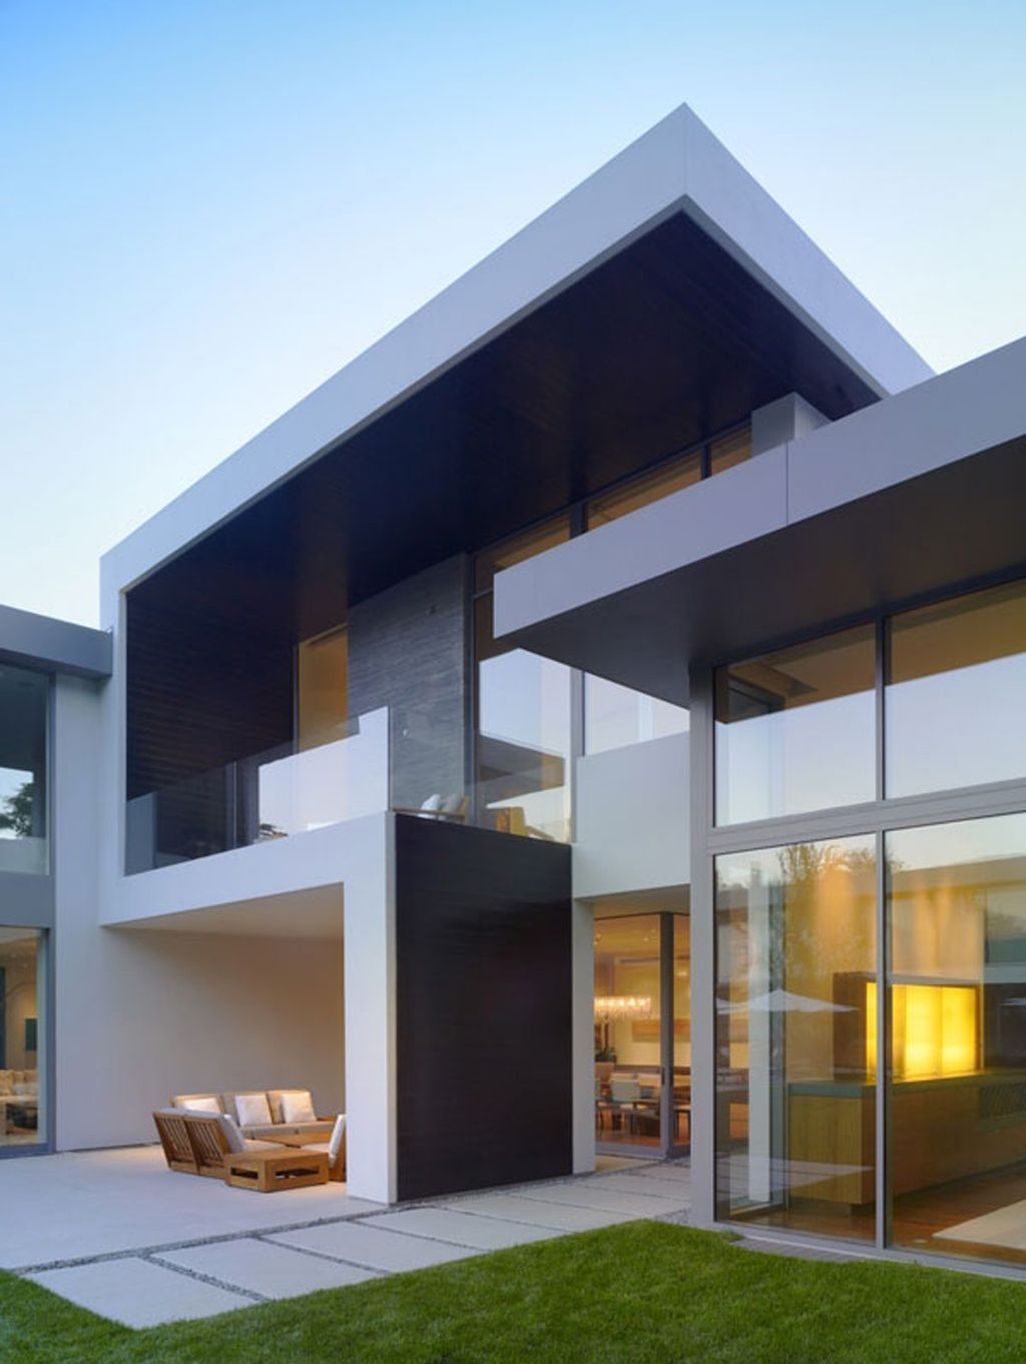 Architecture engaging modern minimalist home plan design with transparent glass walls exterior house designs inspirations terrace space also amazing contemporary urban ideas interior rh pinterest